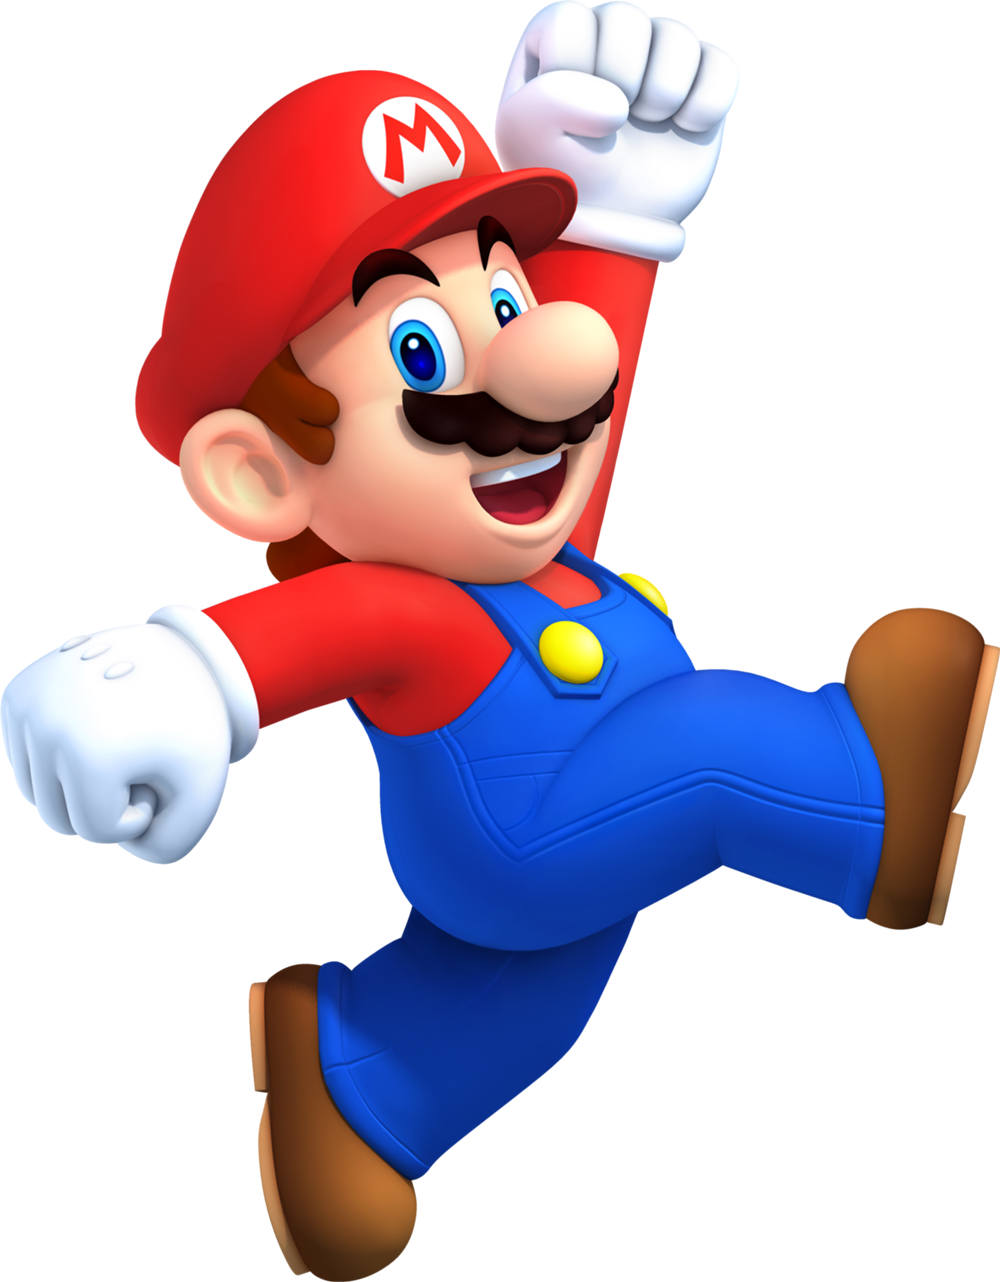 Grab and download Mario Icon PNG